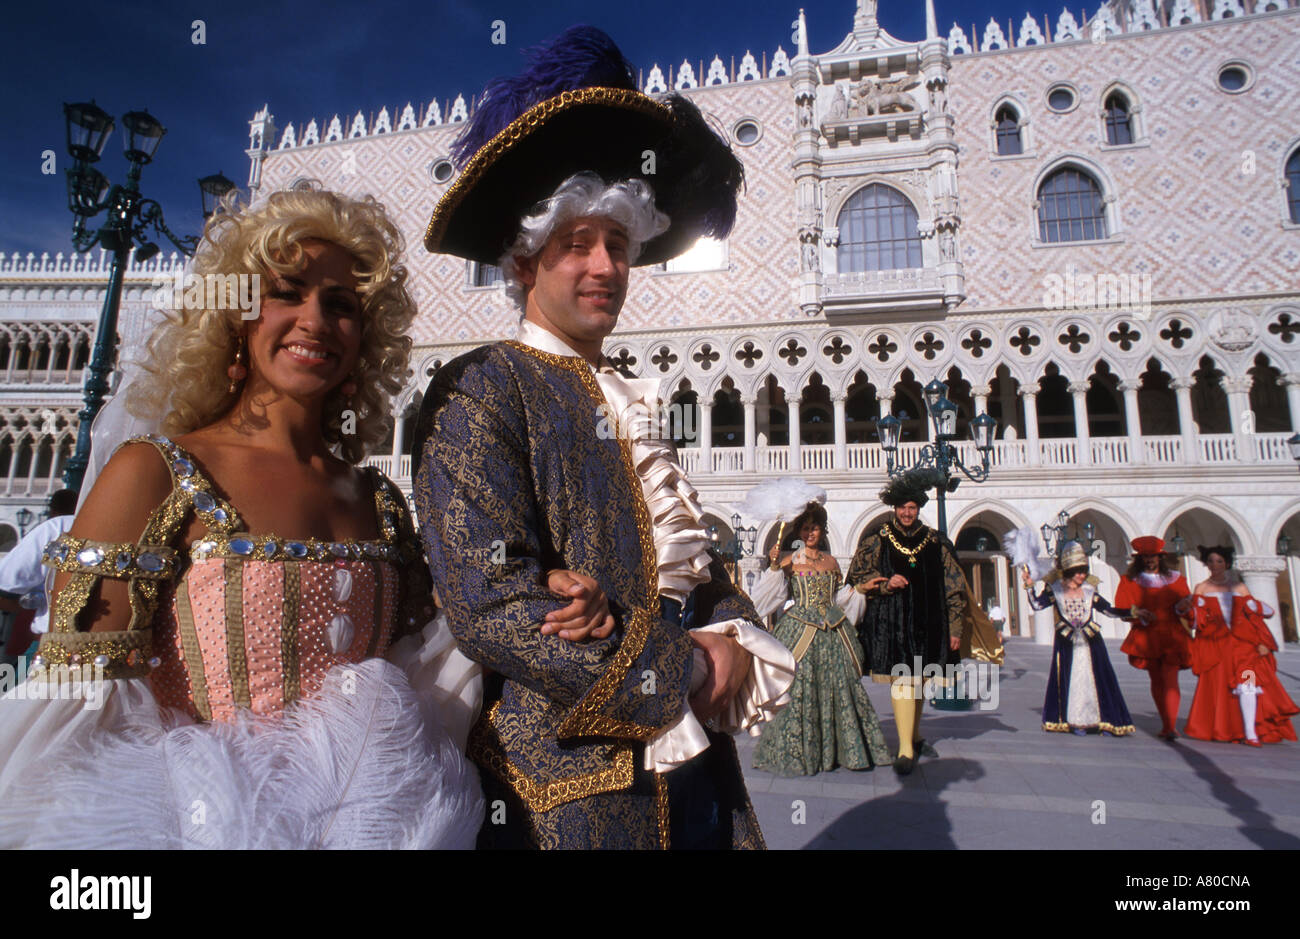 United States, Nevada, Las Vegas, Opera's actors at the Hotel Venetian - Stock Image